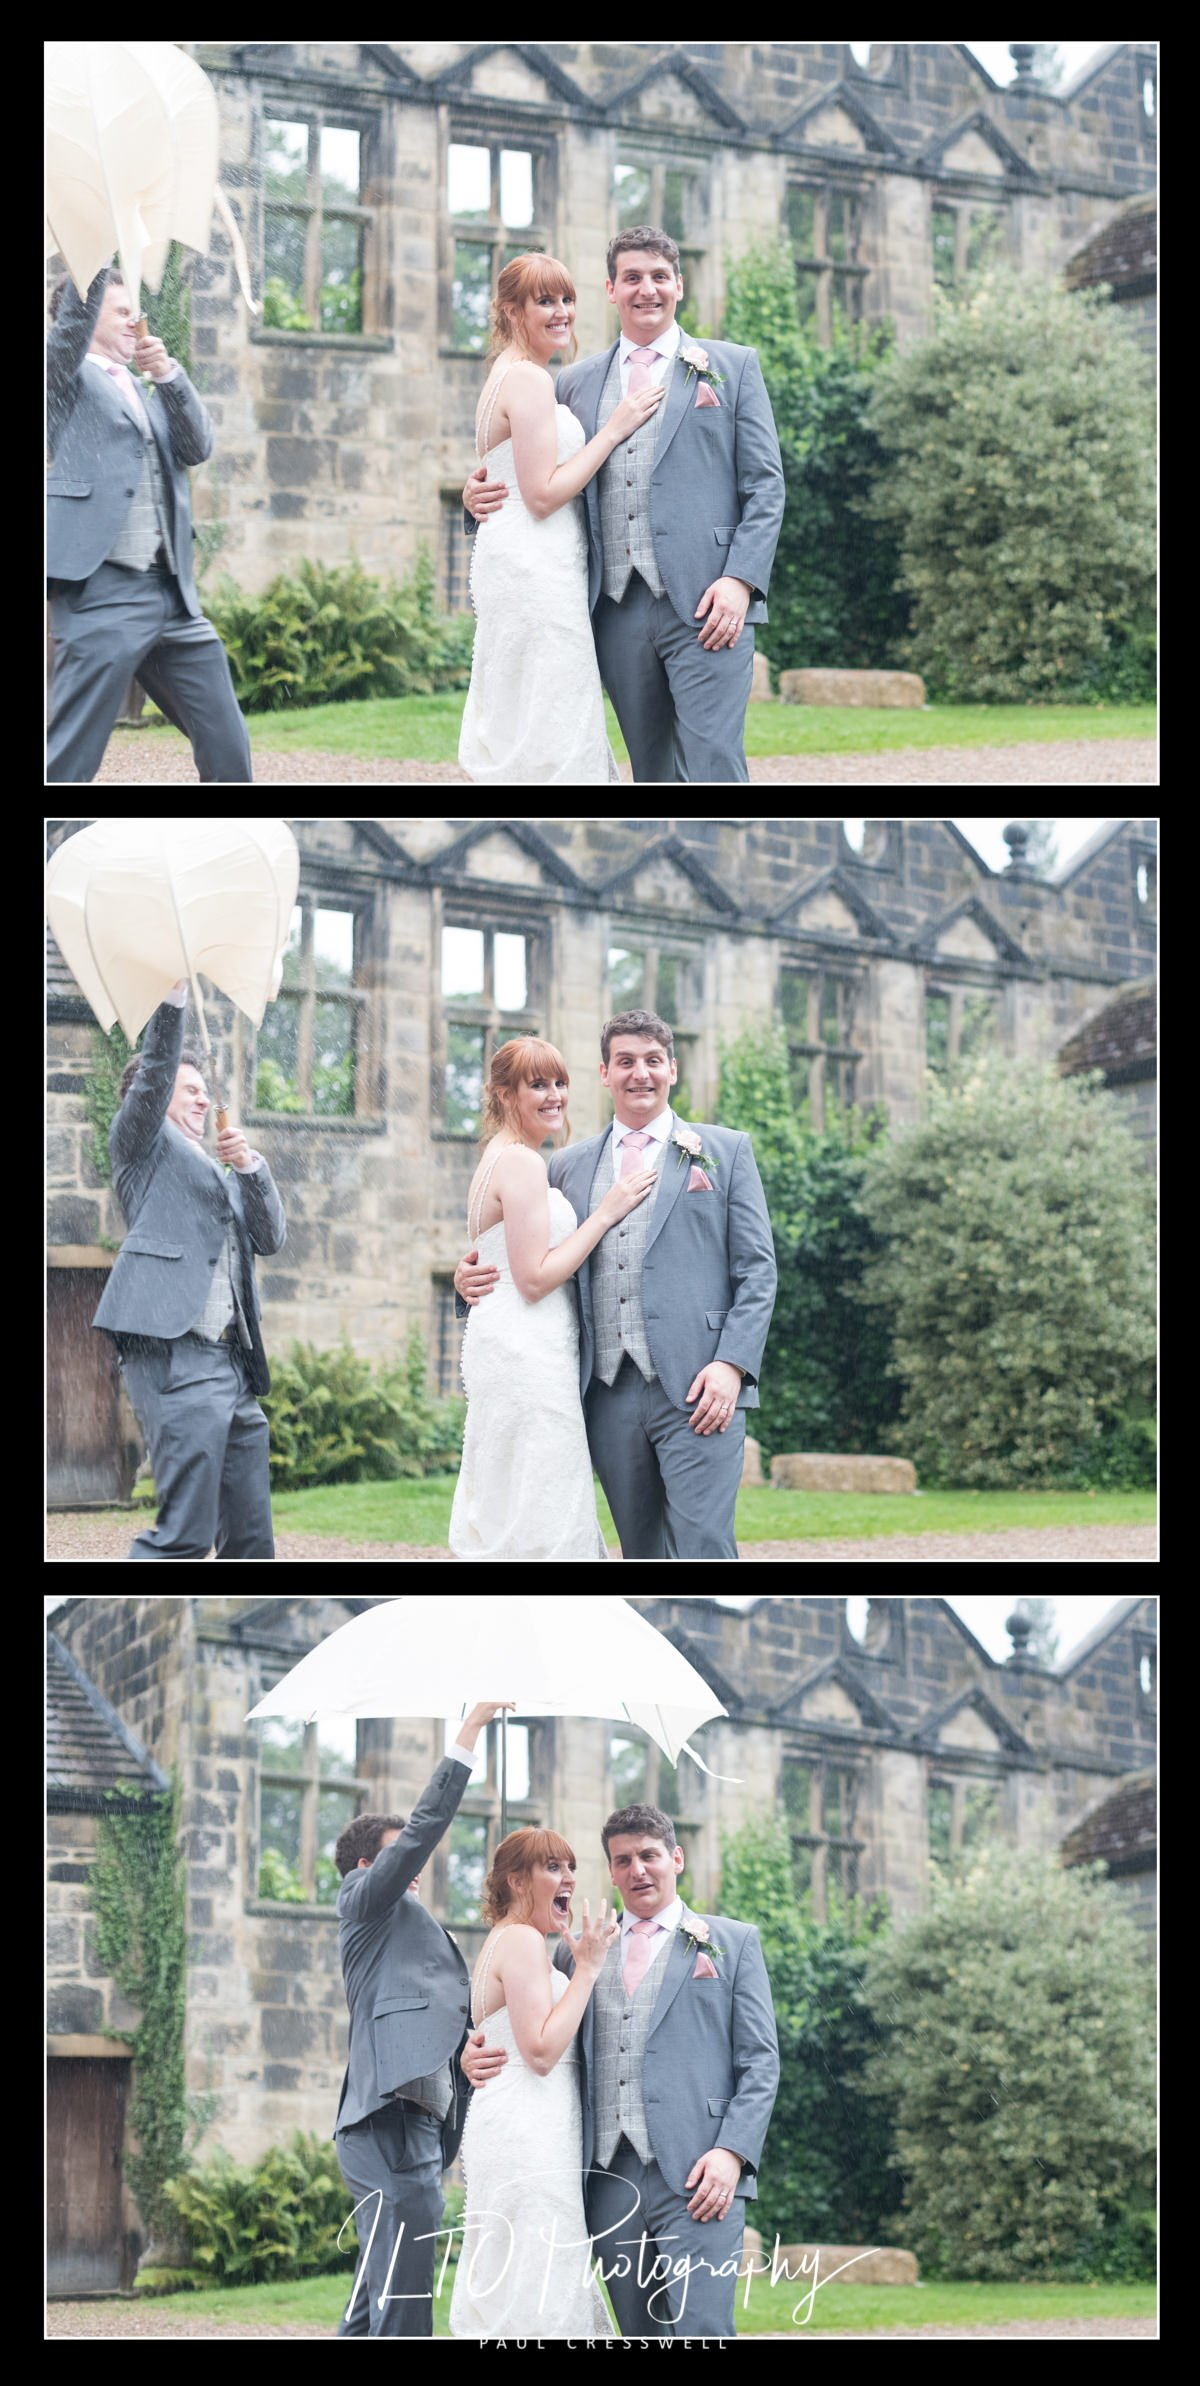 Funny wedding photography, wet wedding, riddlesden Hall, national trust wedding venue